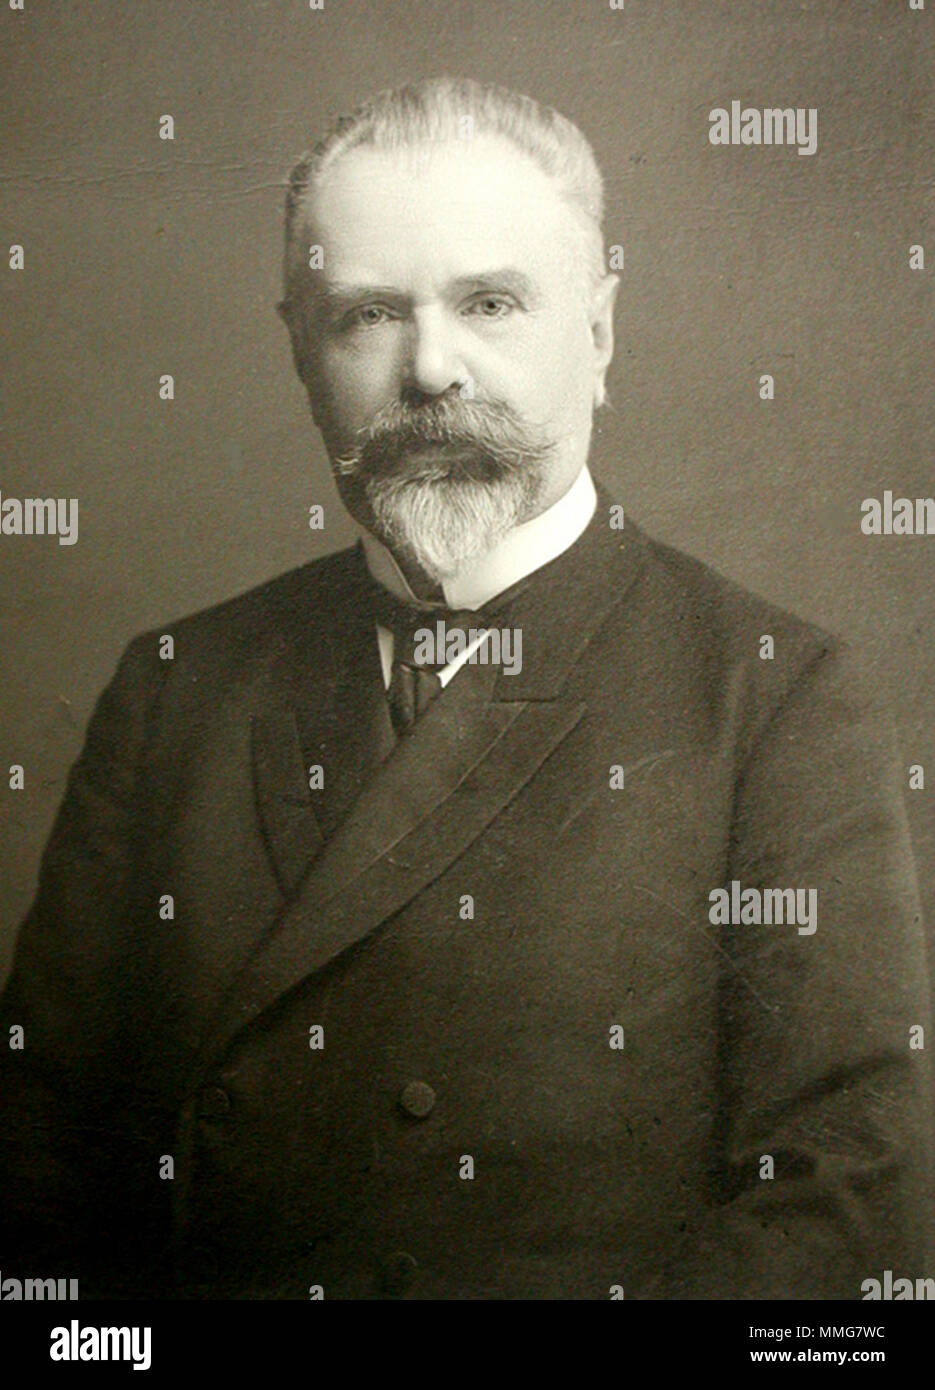 Baron Boris Vladimirovich Stürmer (1848 – 1917), he served as Prime Minister, and Minister of Internal Affairs and Foreign Minister of the Russian Empire - Stock Image